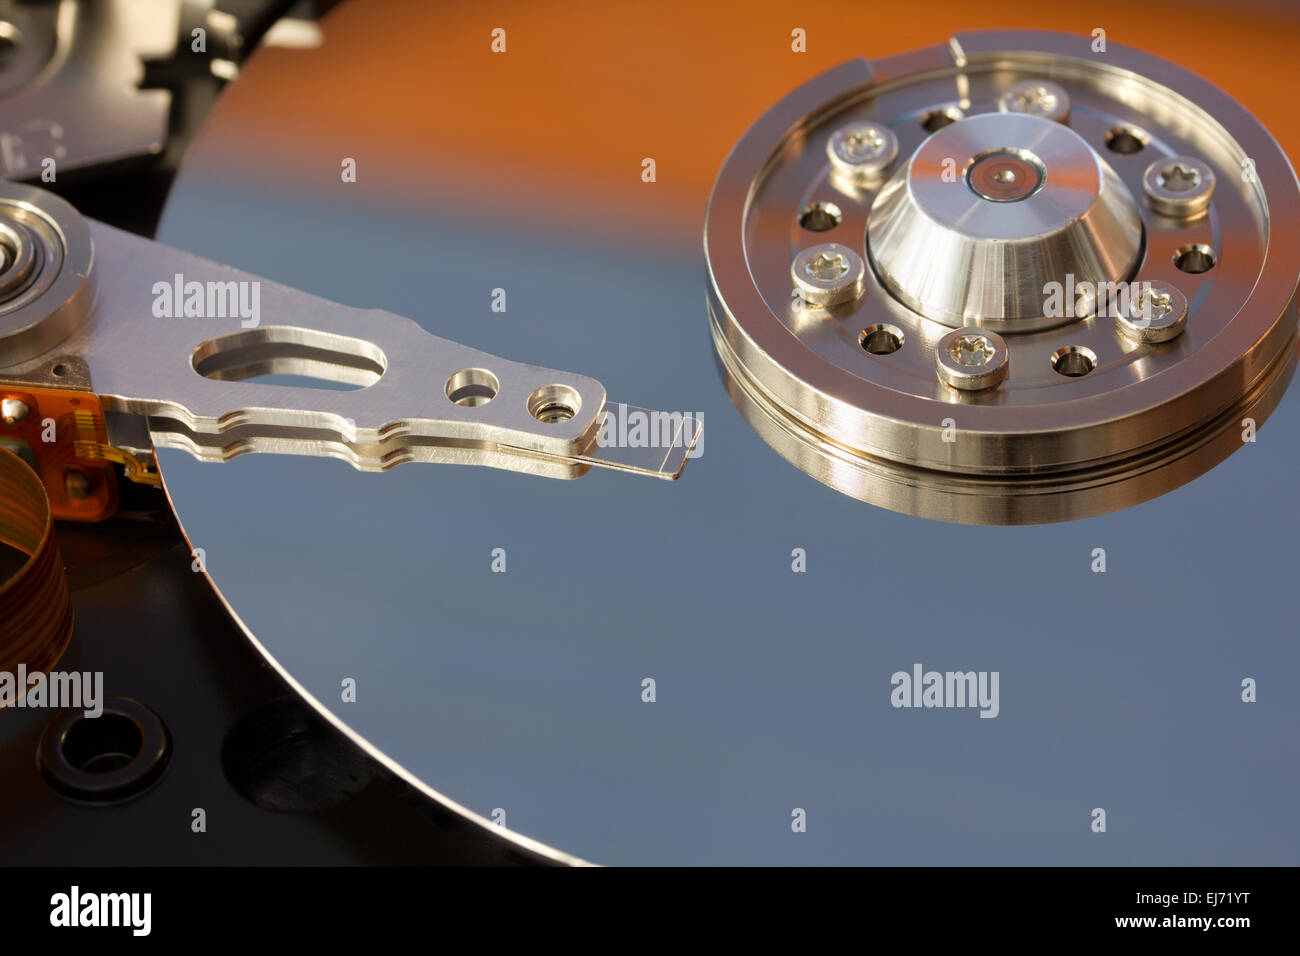 Computer Hard Drive with Head and Disk - Stock Image